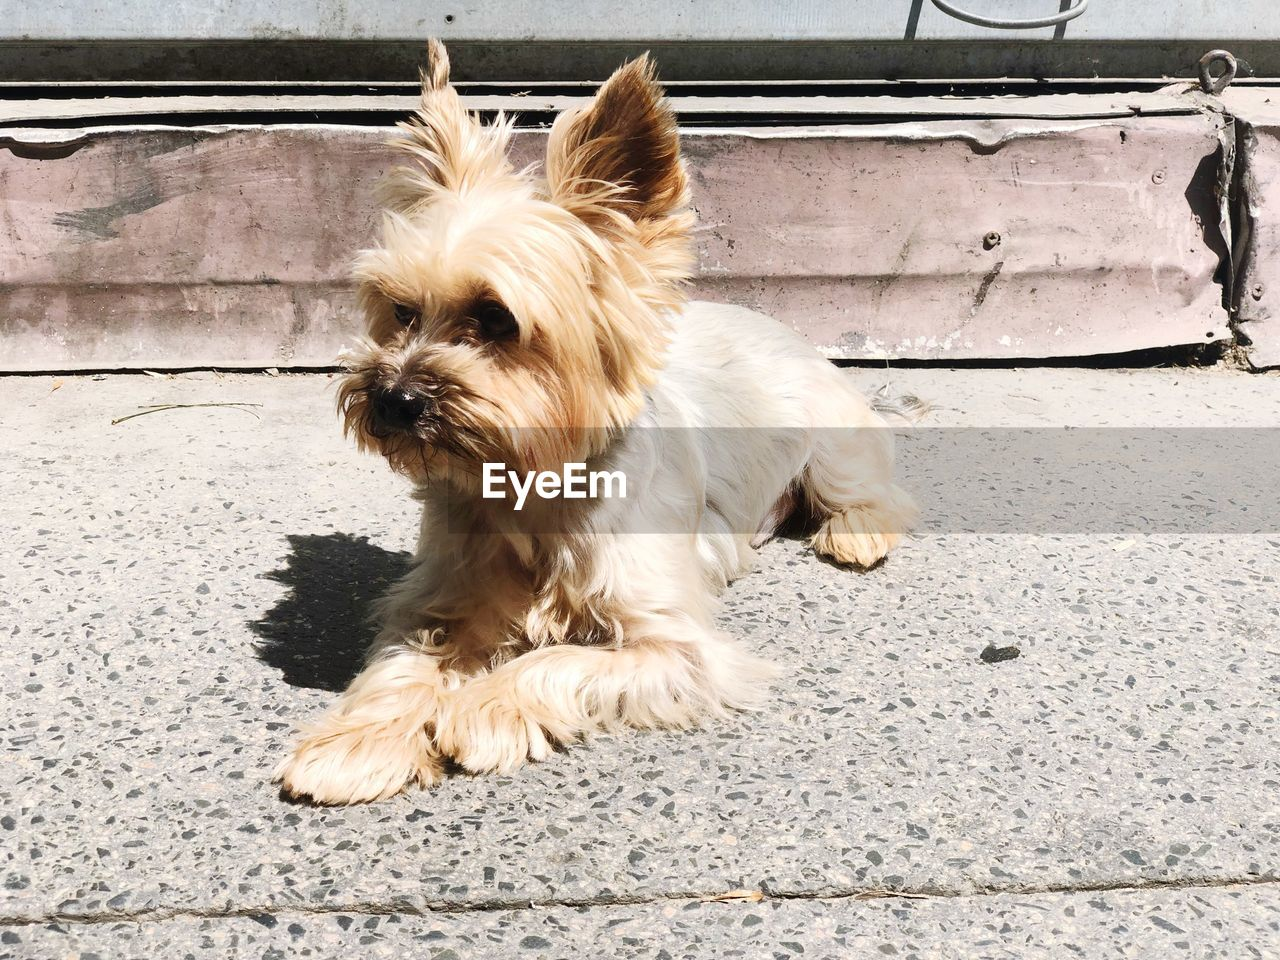 one animal, domestic, mammal, domestic animals, pets, animal themes, animal, dog, canine, vertebrate, no people, day, looking away, hair, animal hair, looking, transportation, yorkshire terrier, lap dog, full length, small